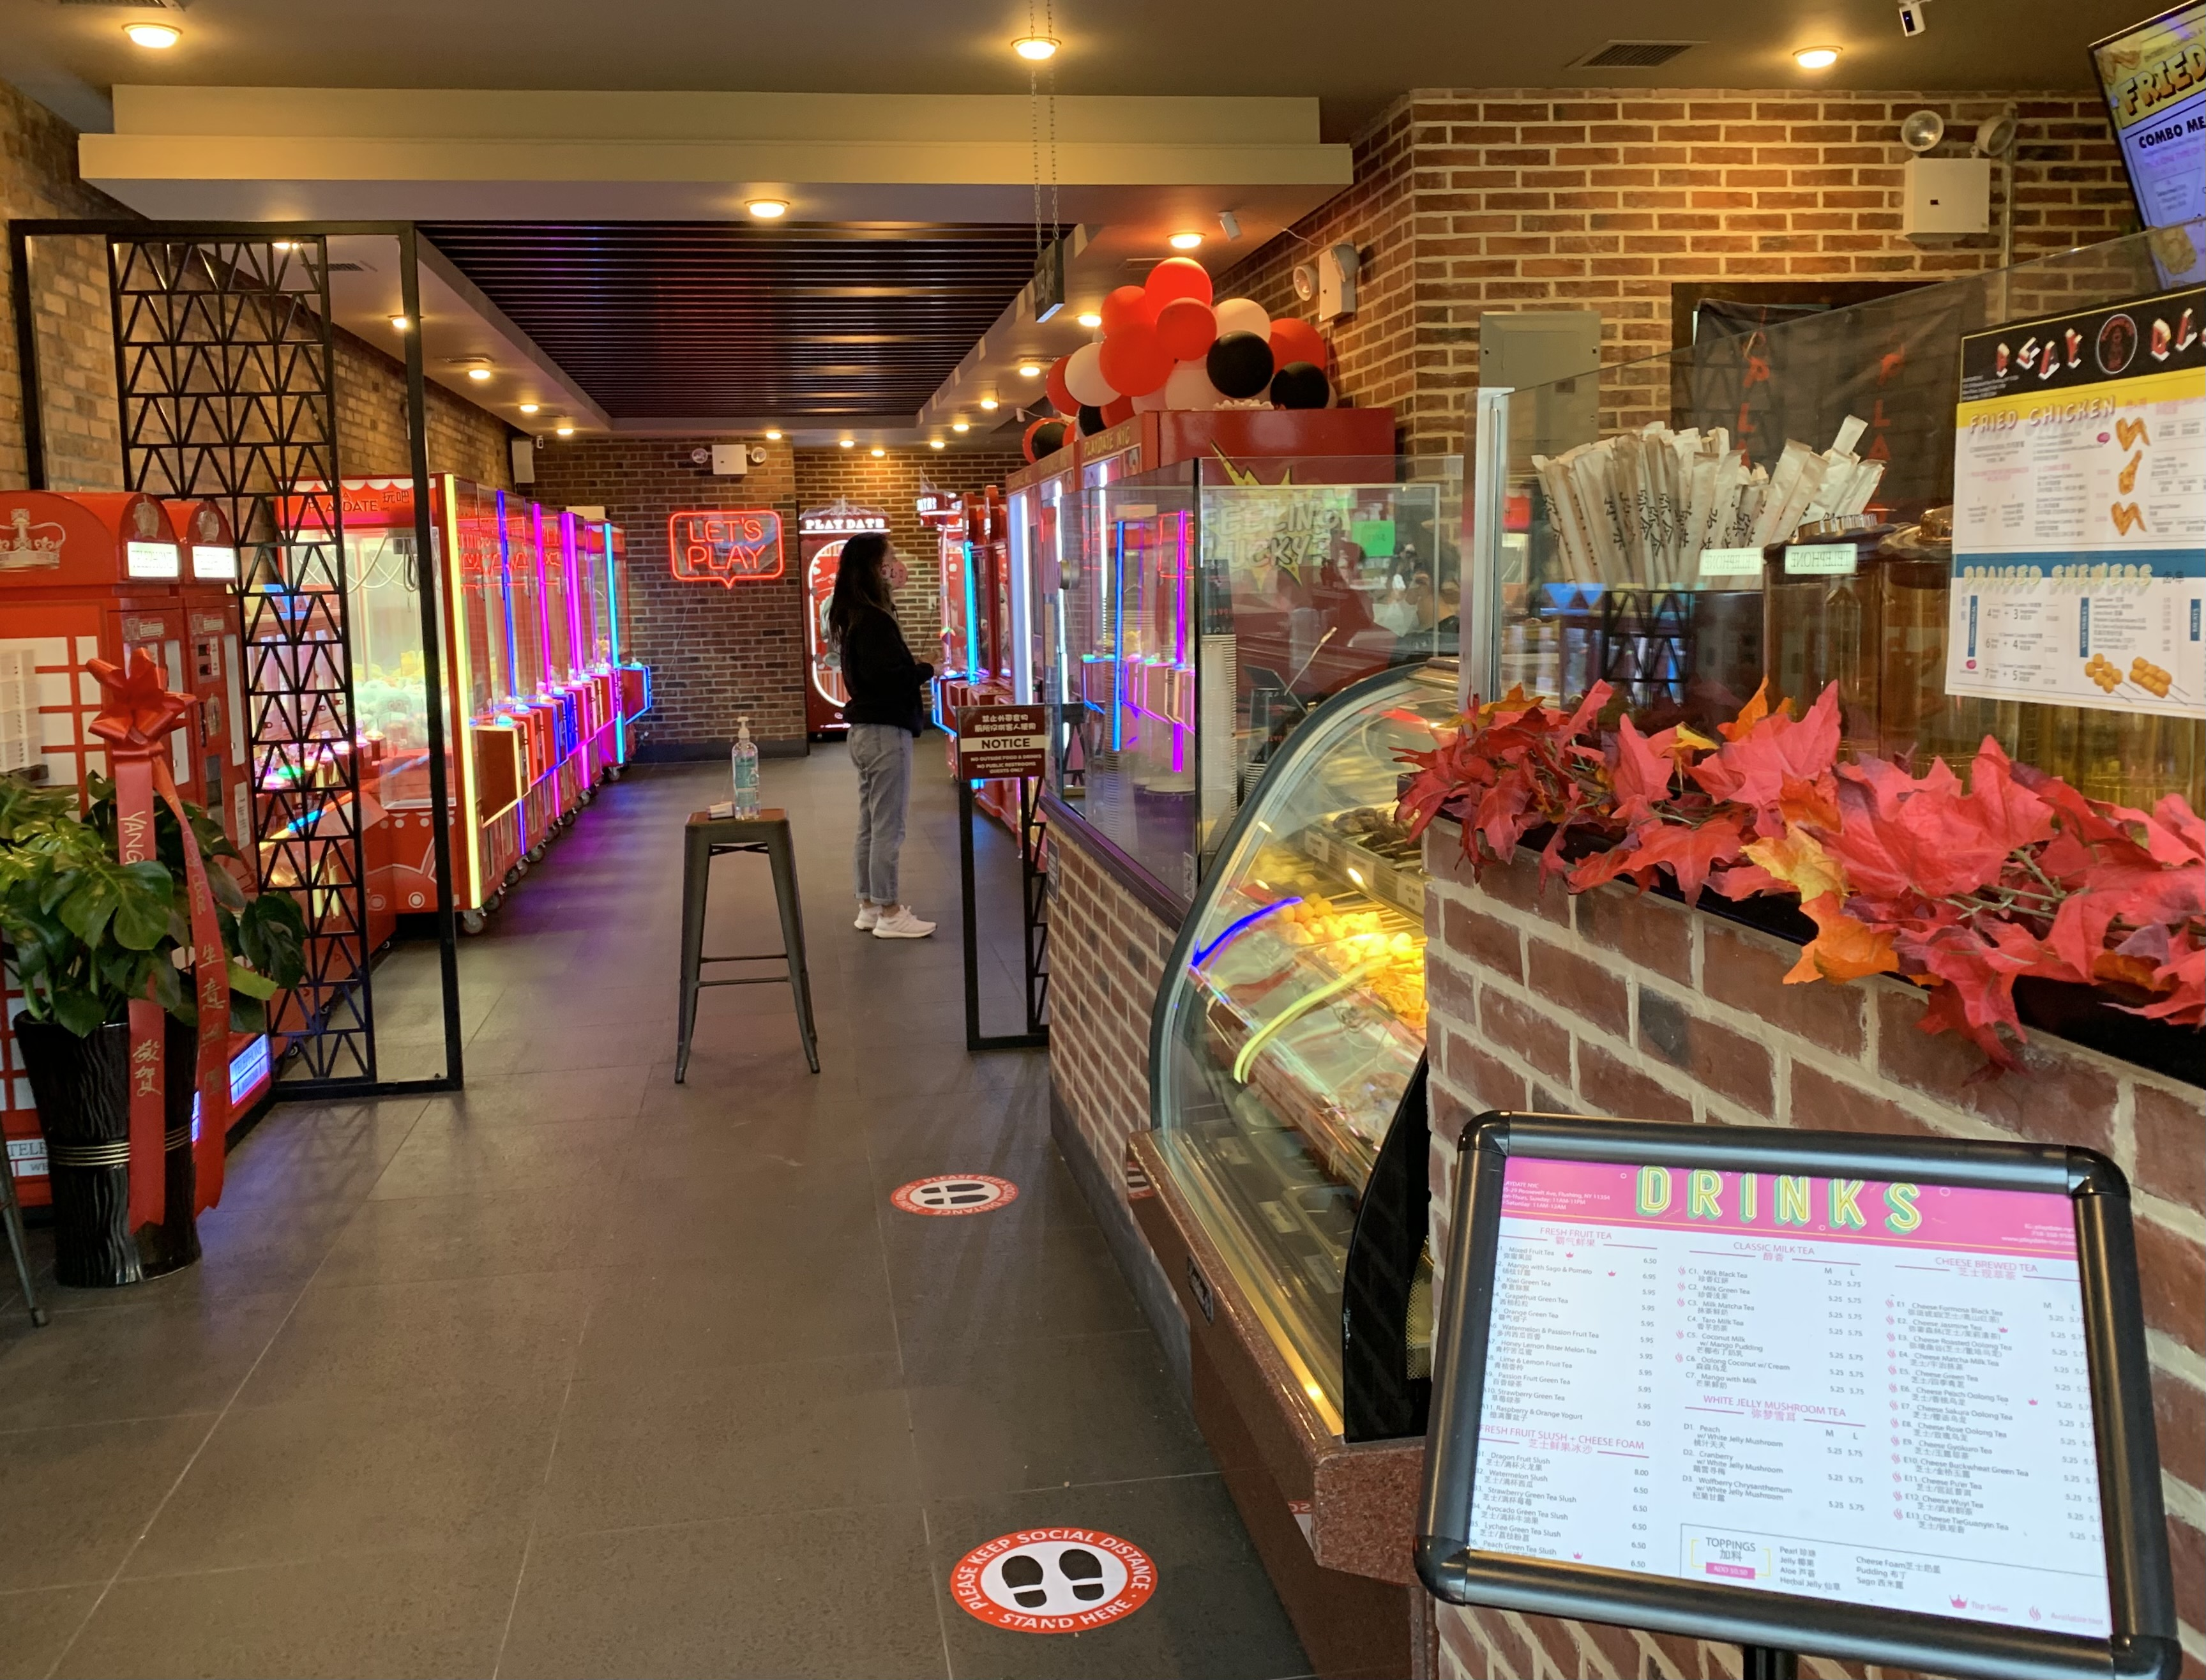 Inside a restaurant where an ordering counter can be seen in the front and a row of arcade games in the back